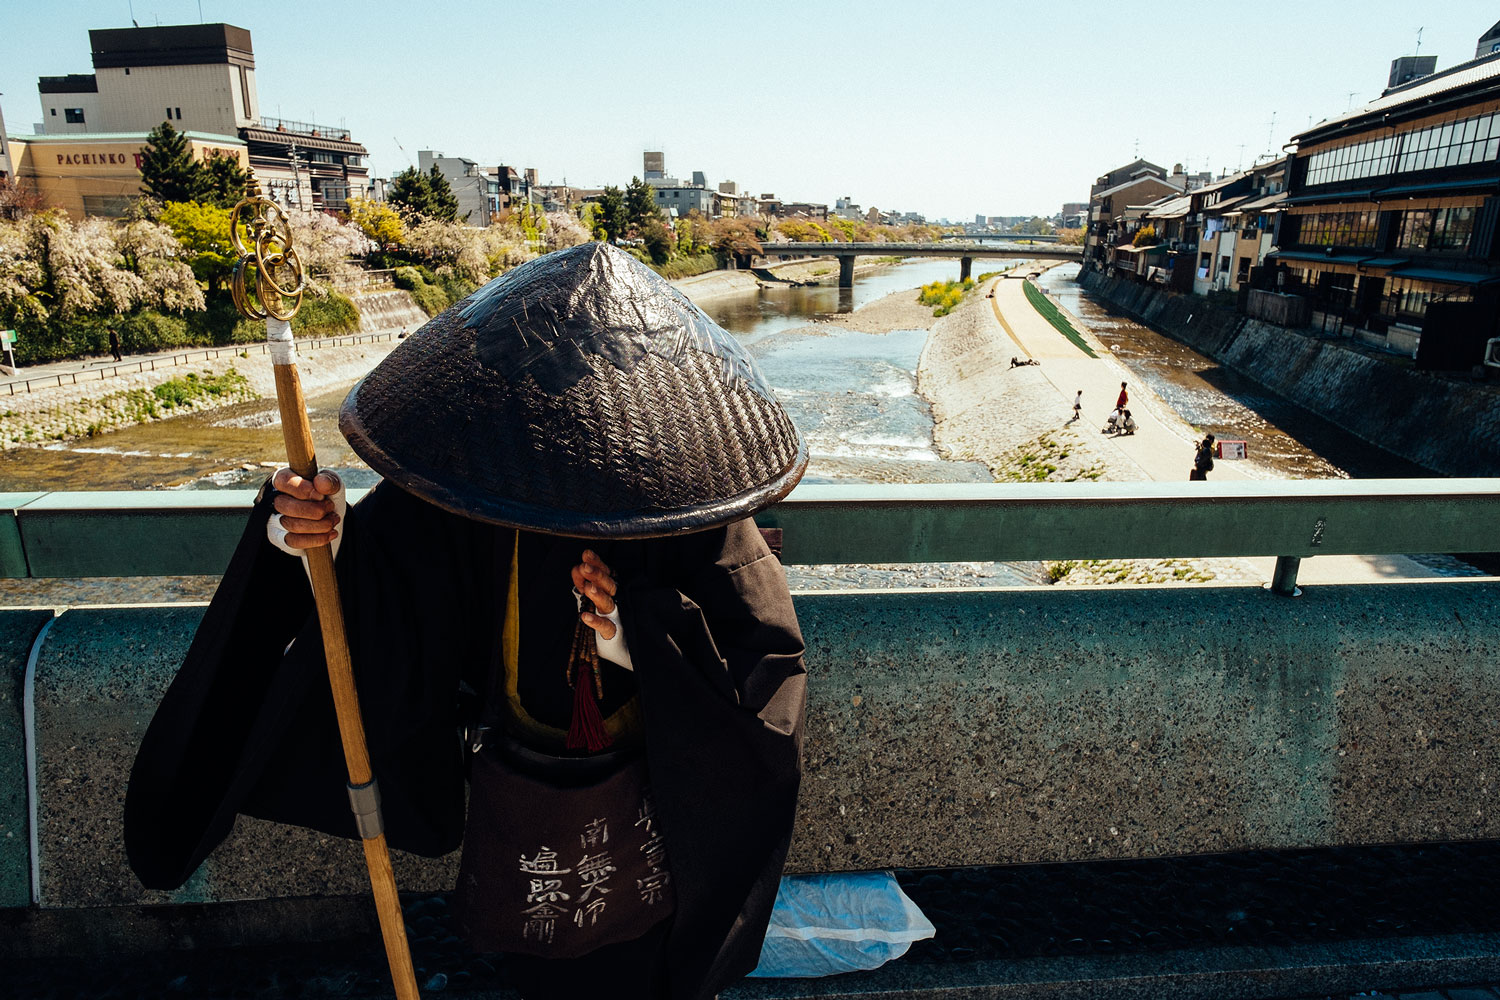 A monk on the main bridge over the river.